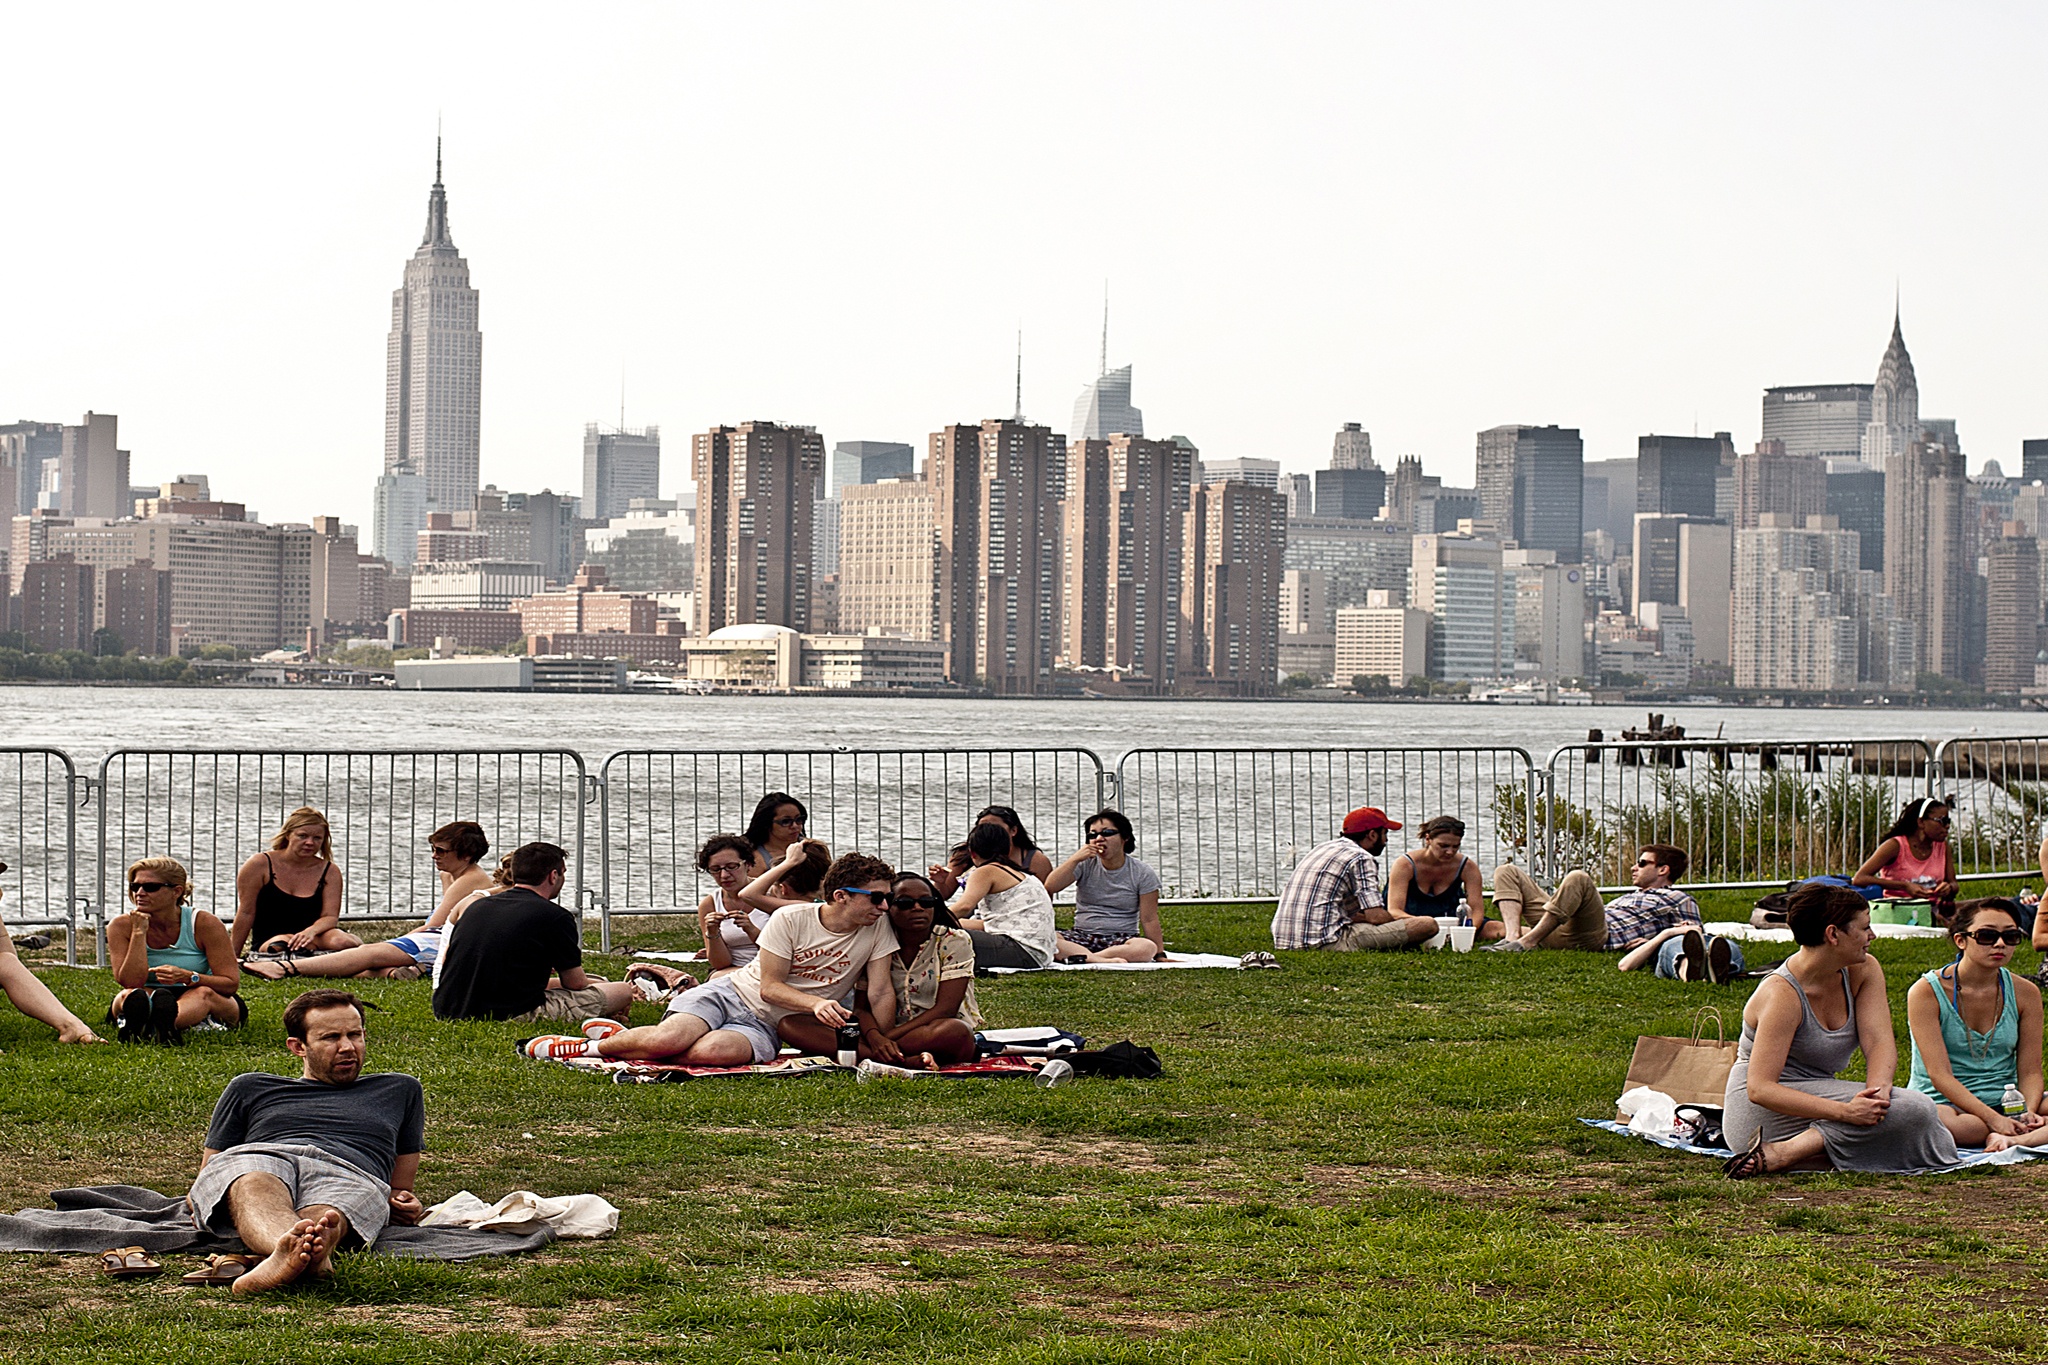 The Williamsburg Waterfront